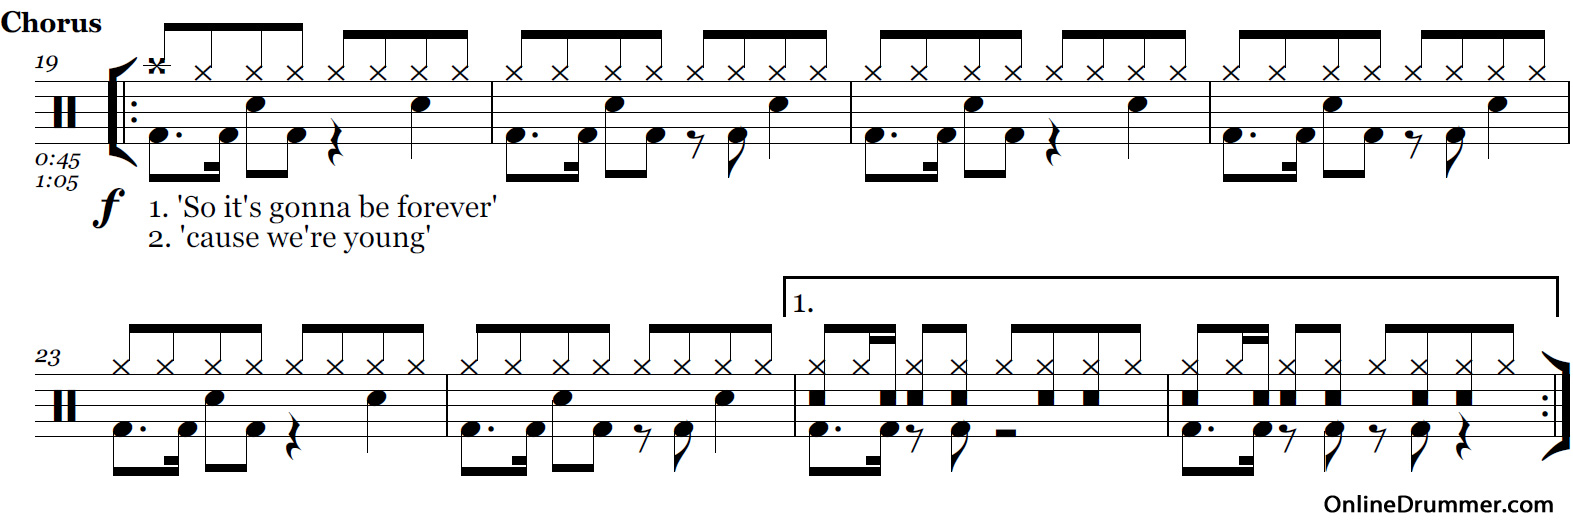 Fancy Piano Chords Of Blank Space Inspiration Song Chords Images